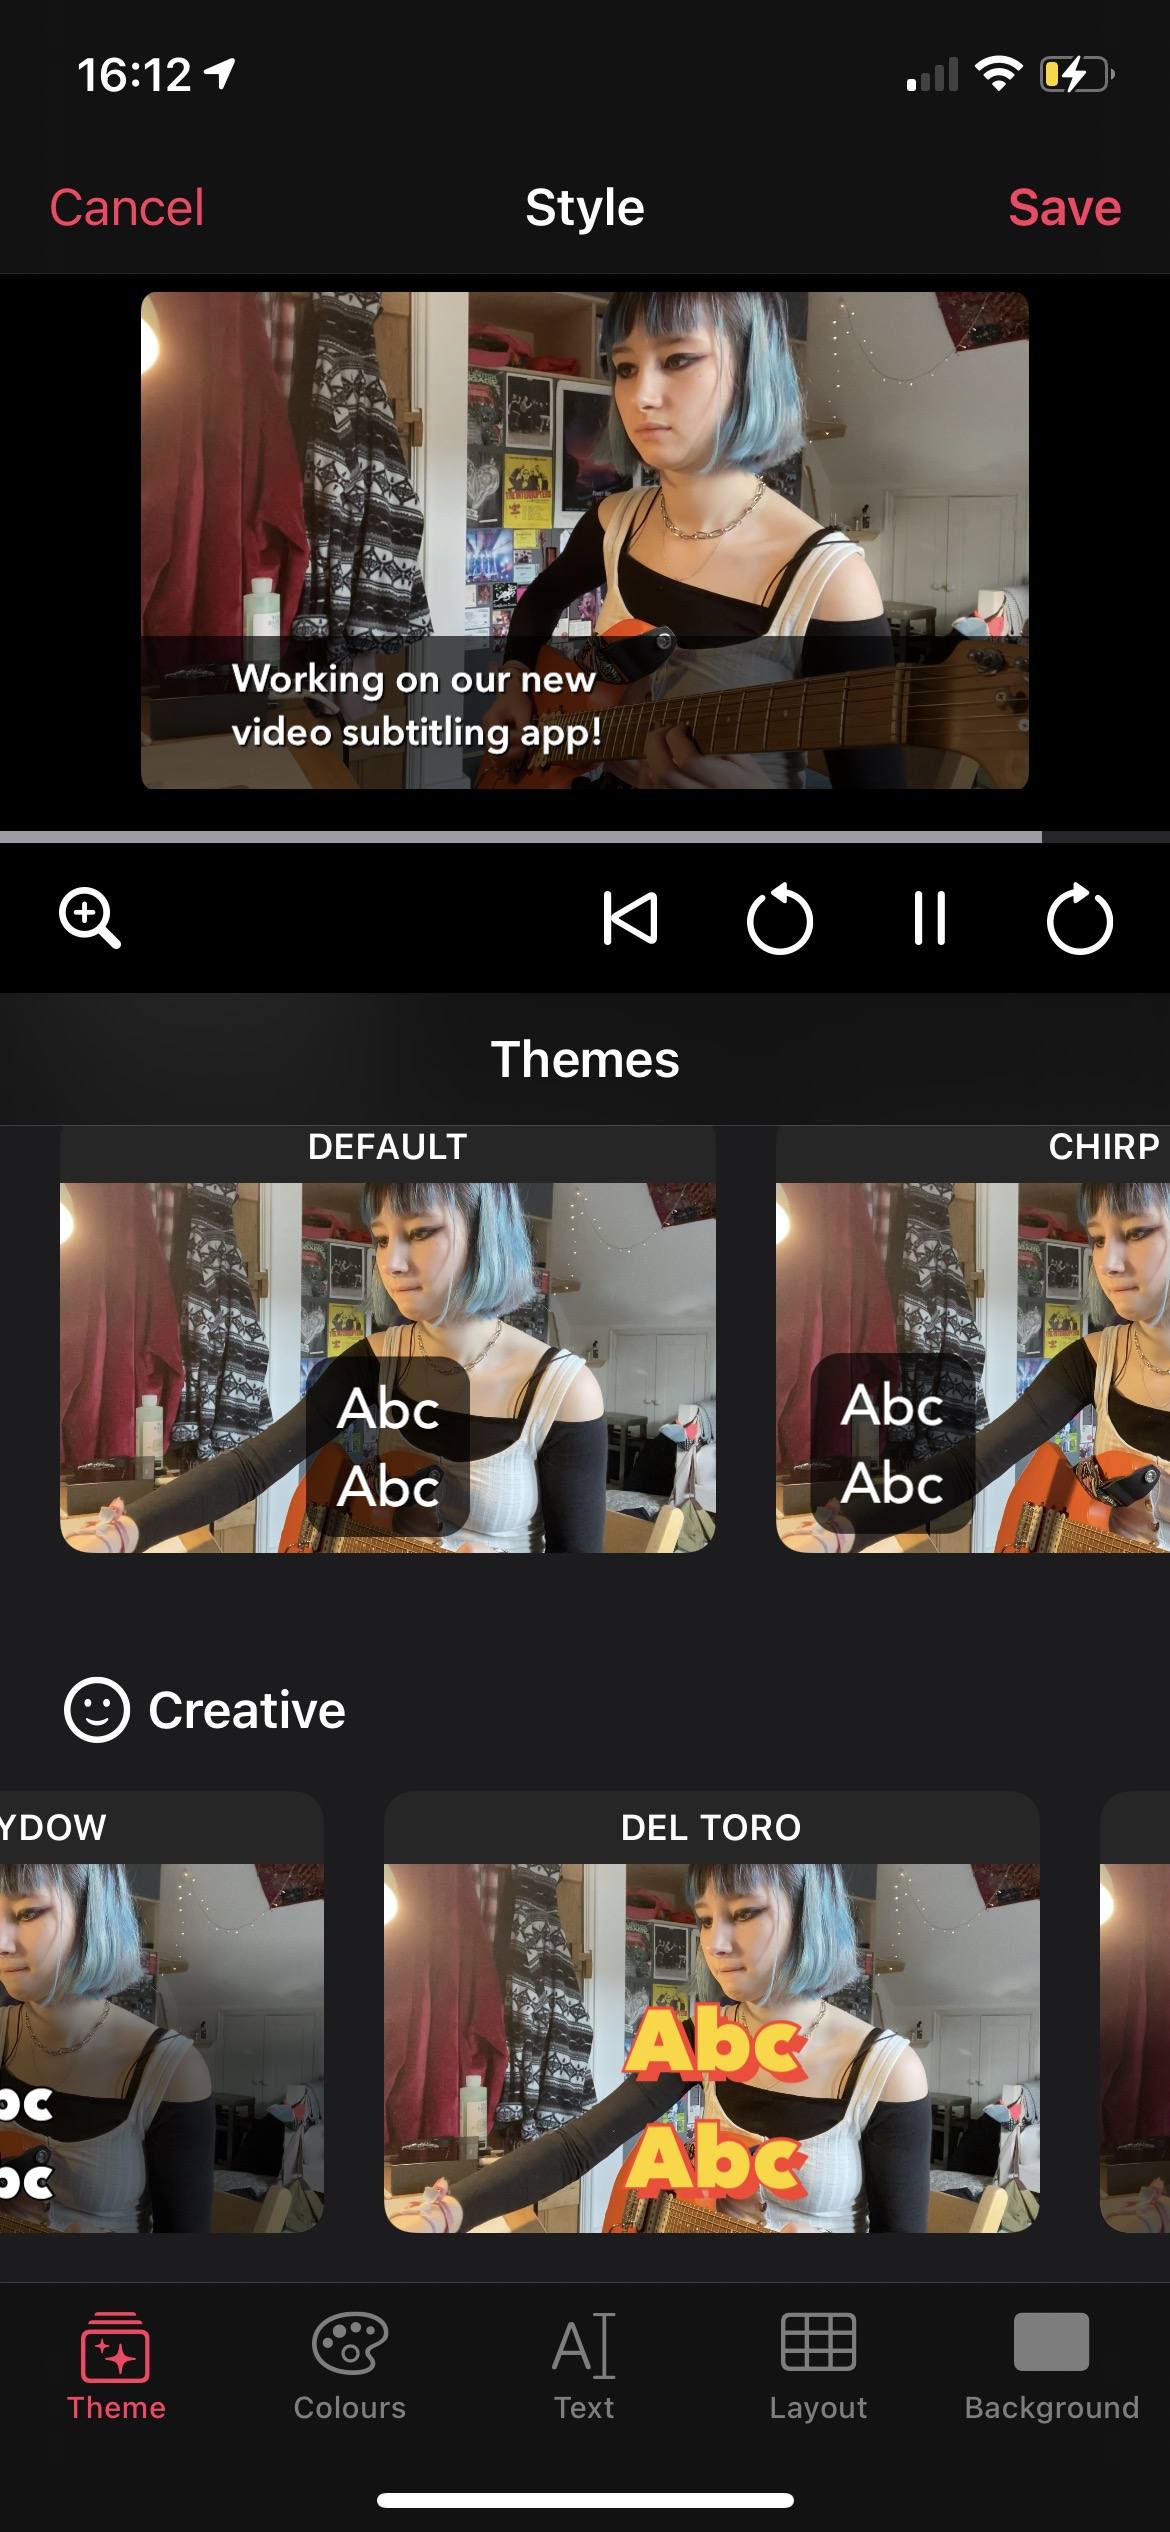 Screenshot of a the new styling UI showing a video and theme thumbnails